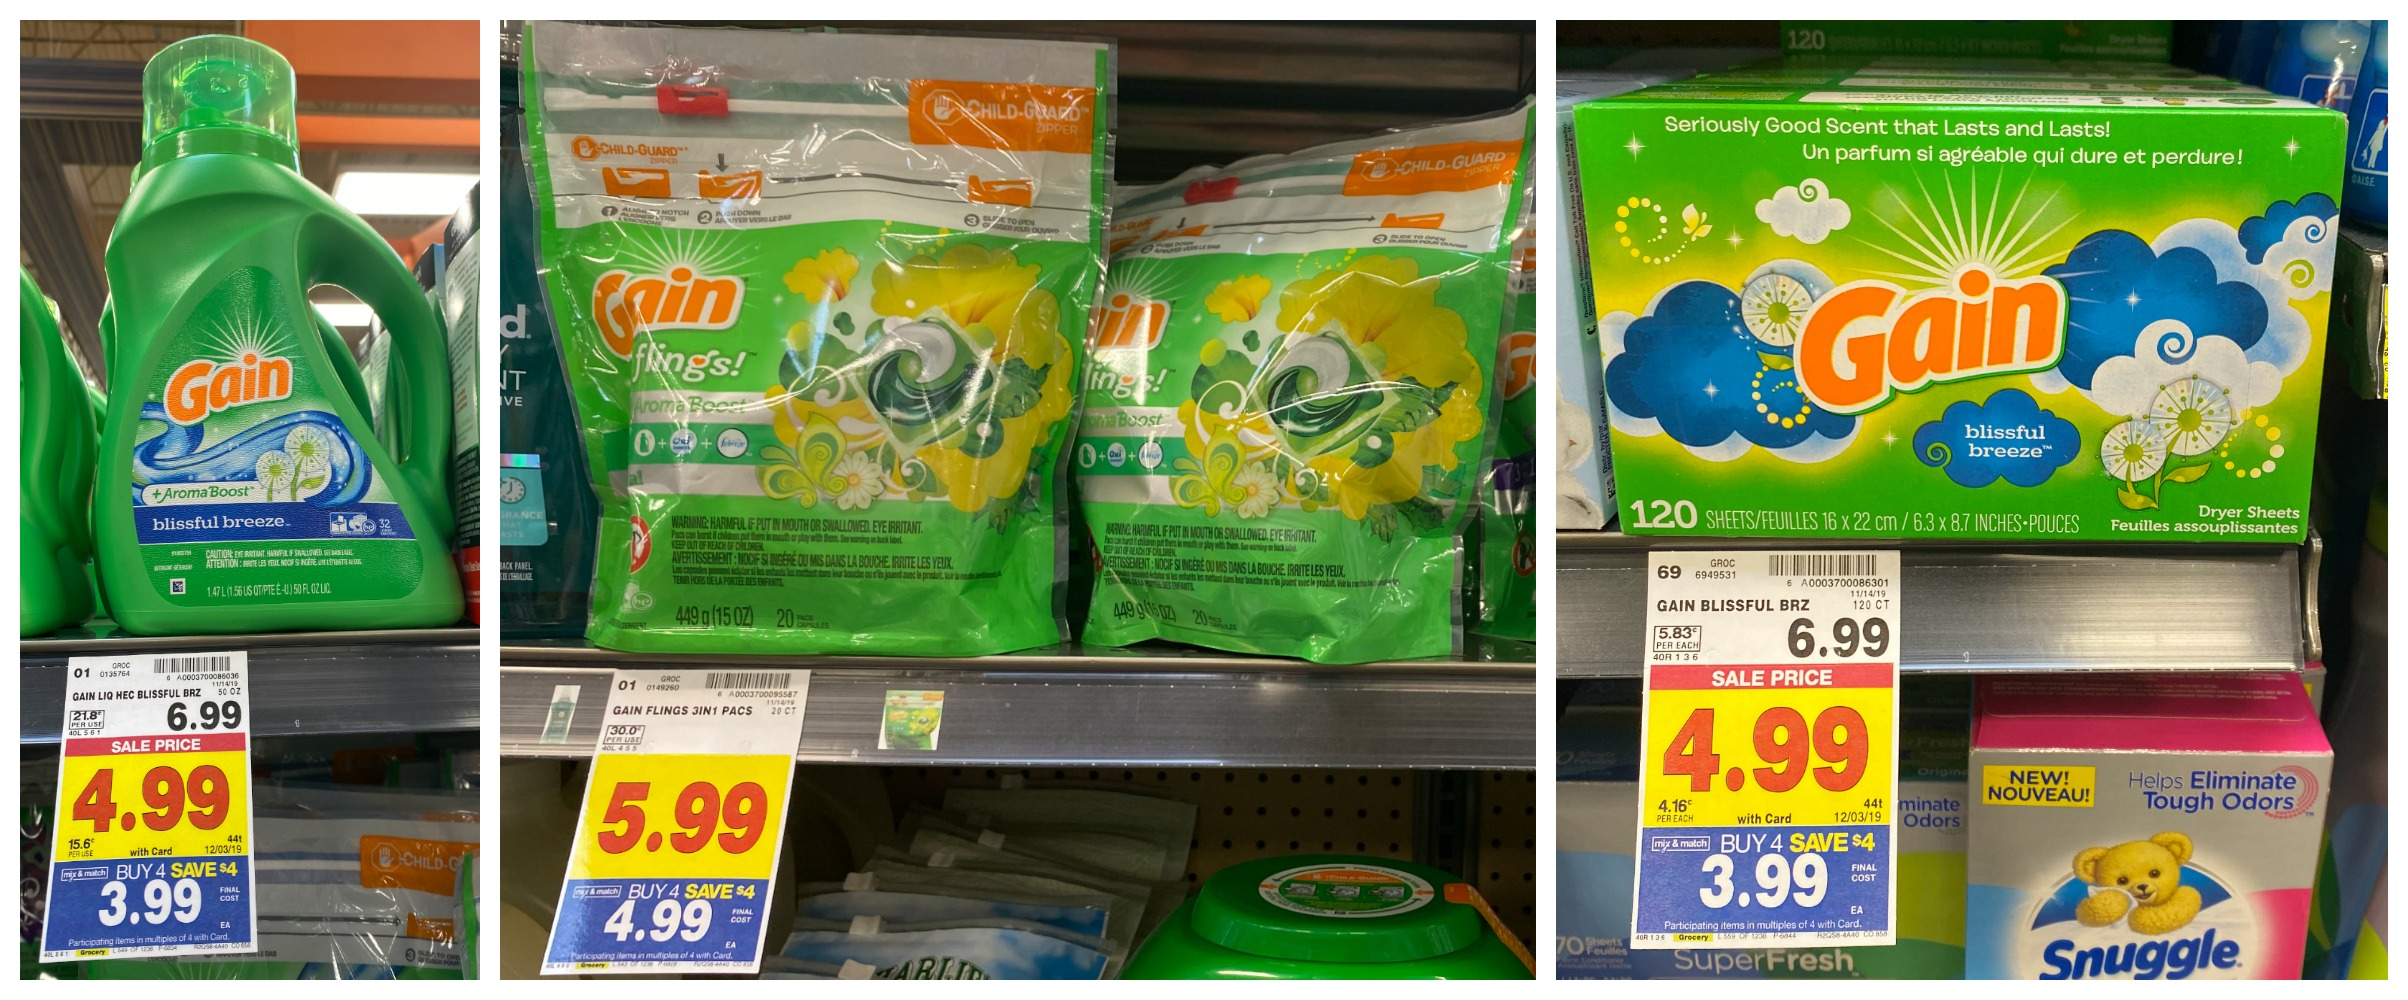 Gain Laundry Products Only 2 99 With Kroger Mega Event Kroger Krazy